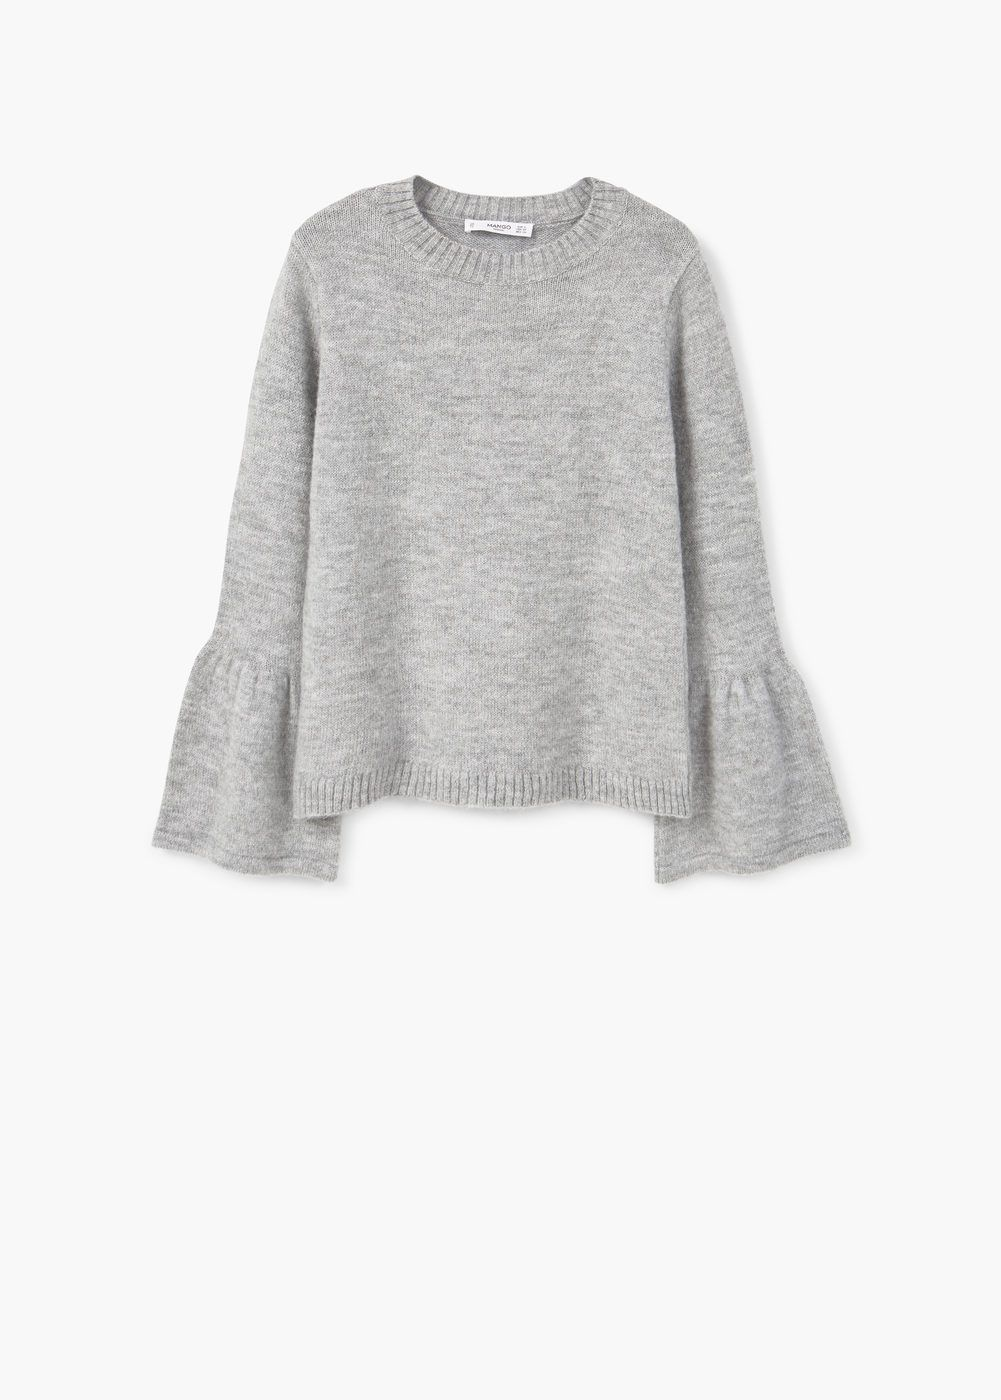 Flared sleeves sweater - Women | s h o p | Pinterest | Sweaters ...